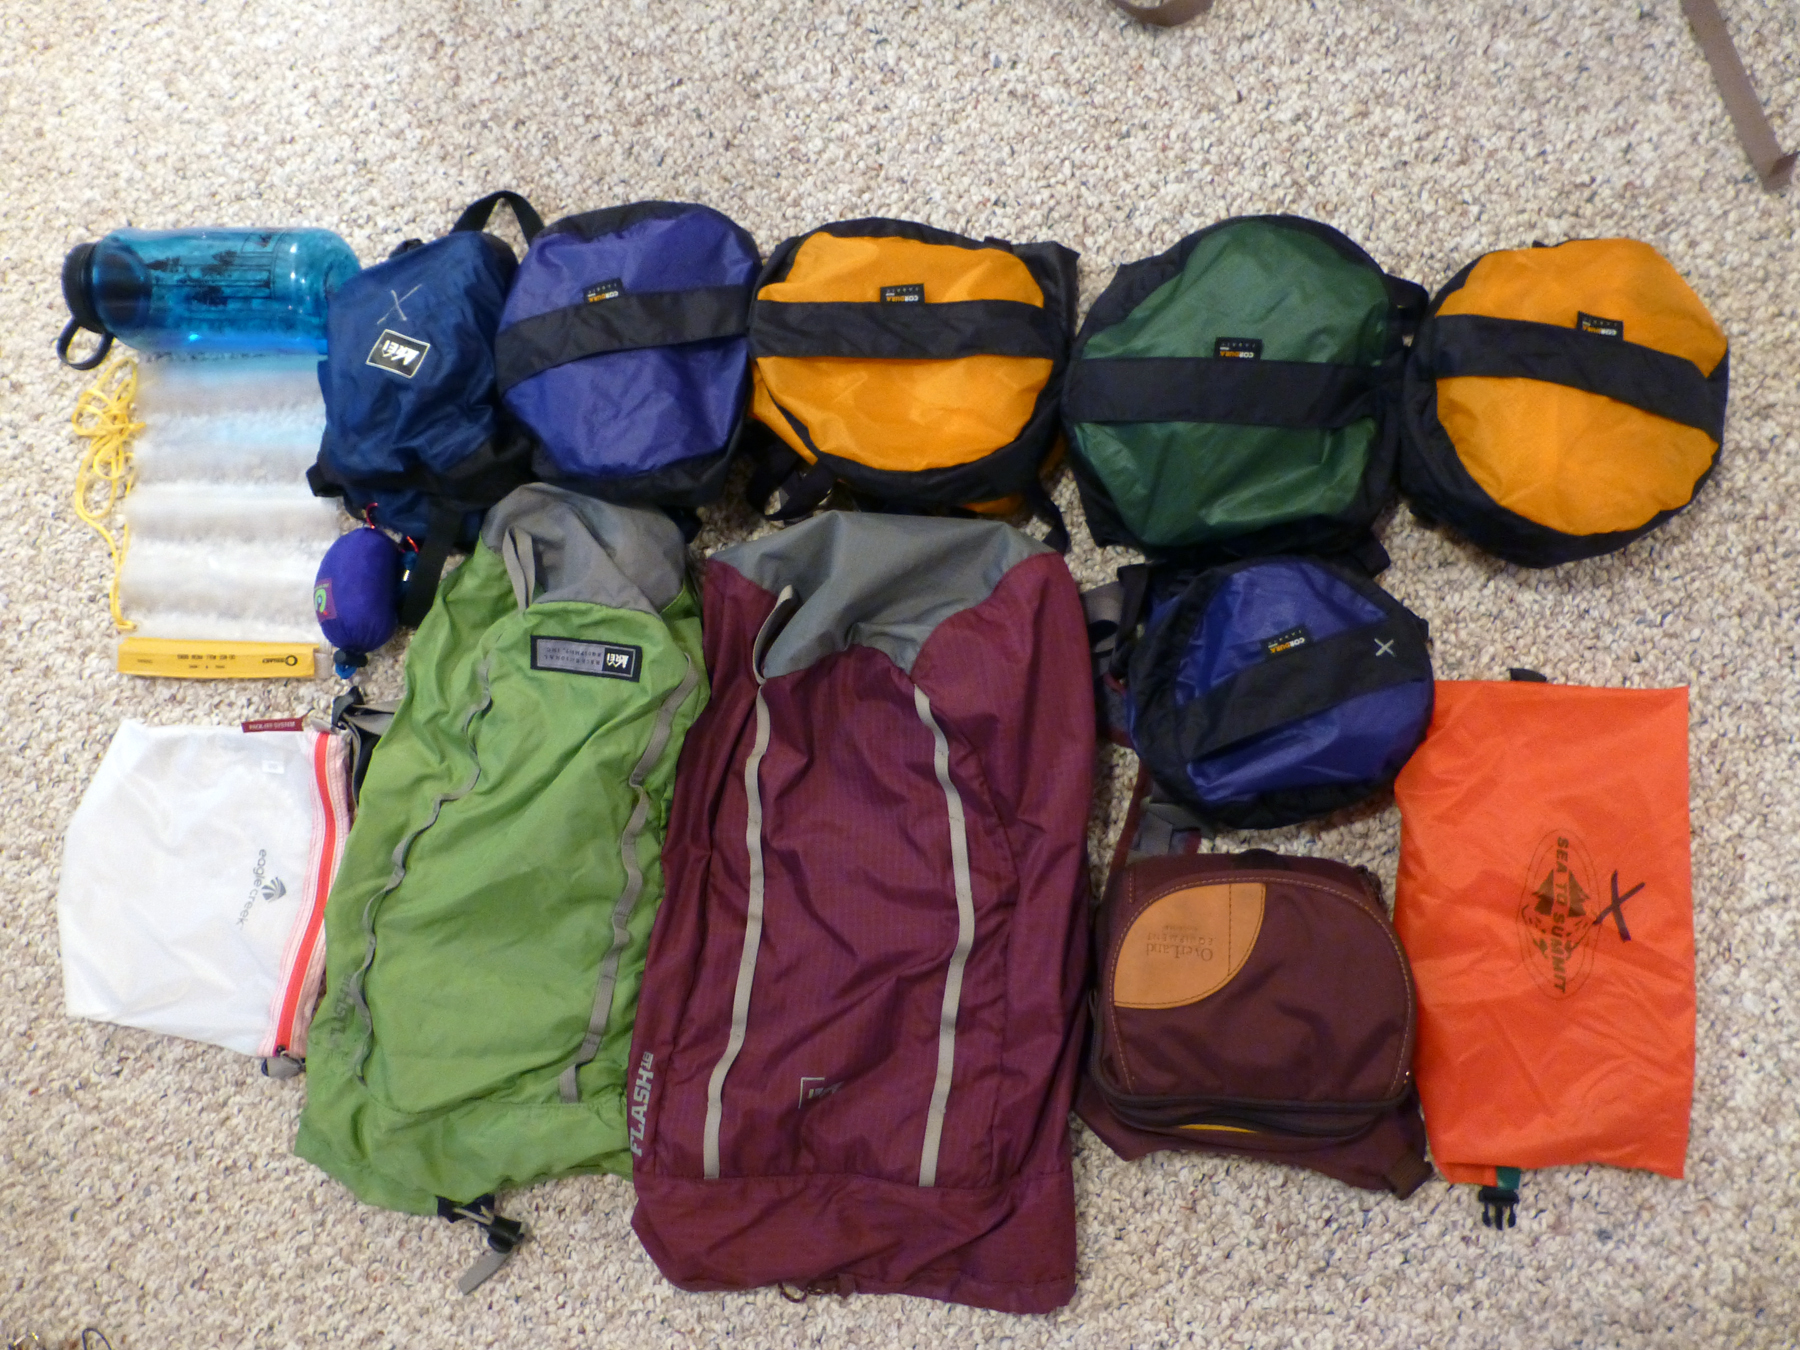 Our daypacks and compression sacks (among other things). We each have three compression sacks: 1 for clothes, 1 for underwear / socks / misc., and 1 for dirty laundry.